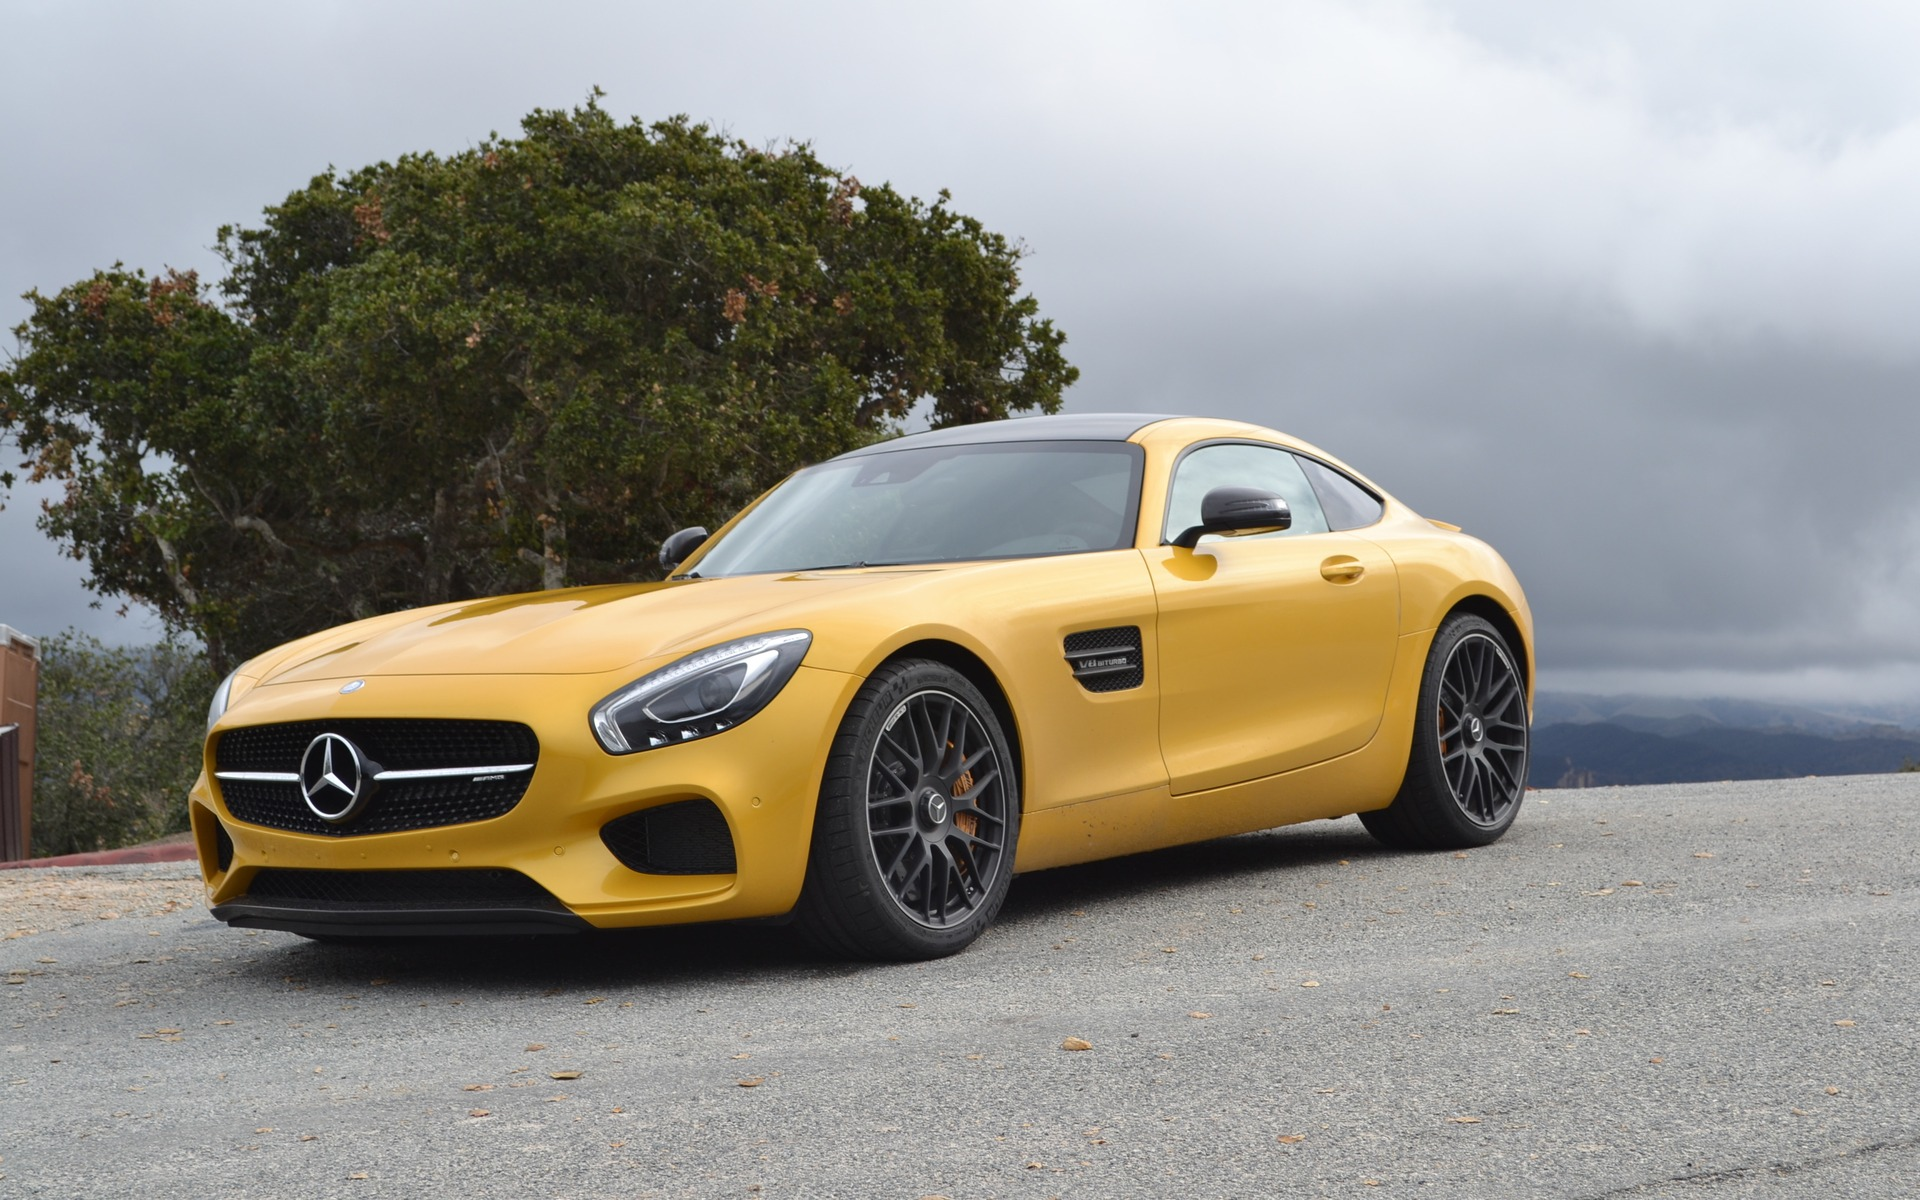 The 2016 Mercedes Amg Gt A New Halo Car With A New